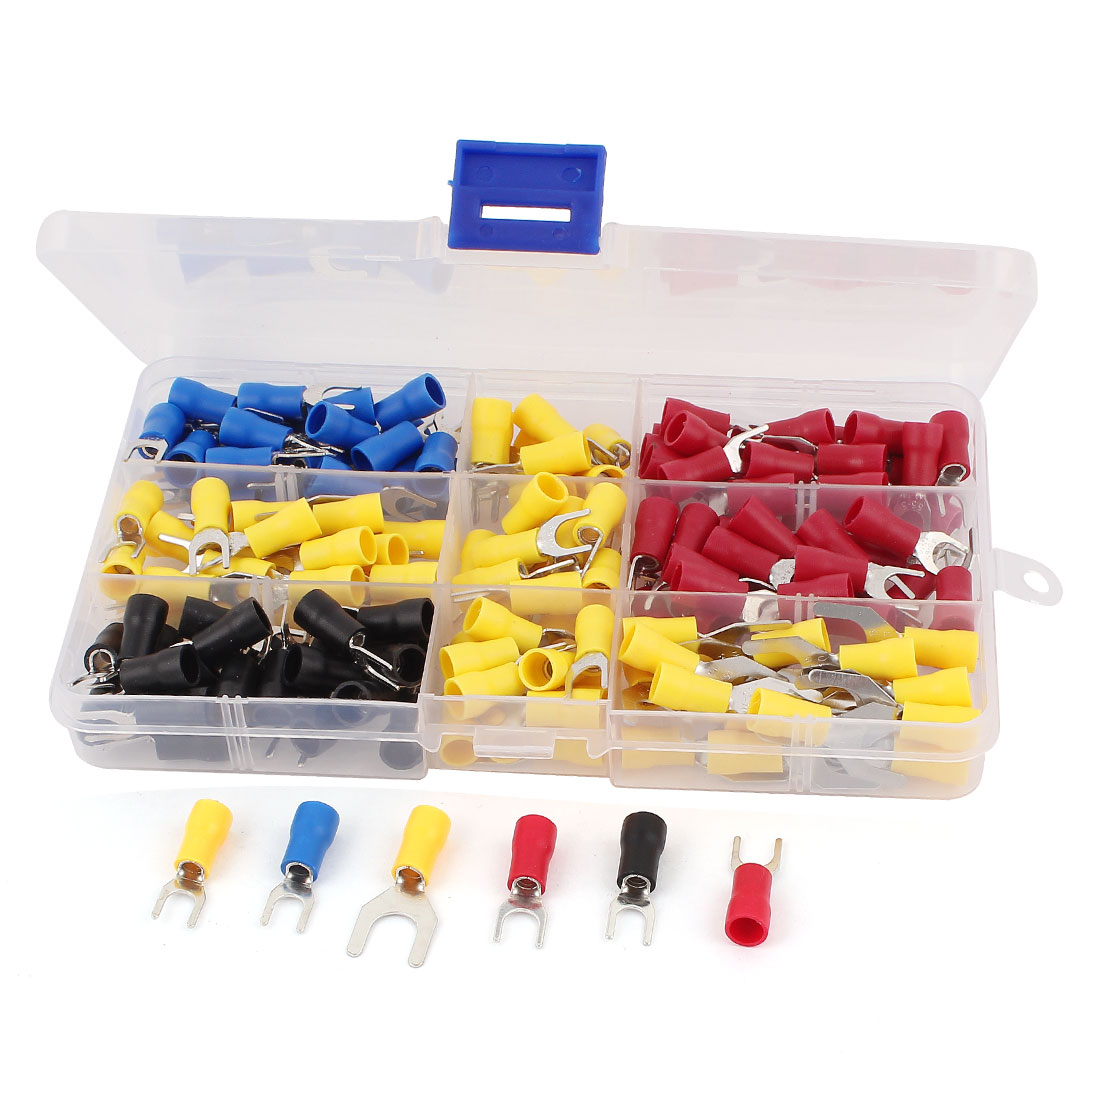 180 Pcs Insulated Fork Wire Connector Crimp Terminal Assortment Kit